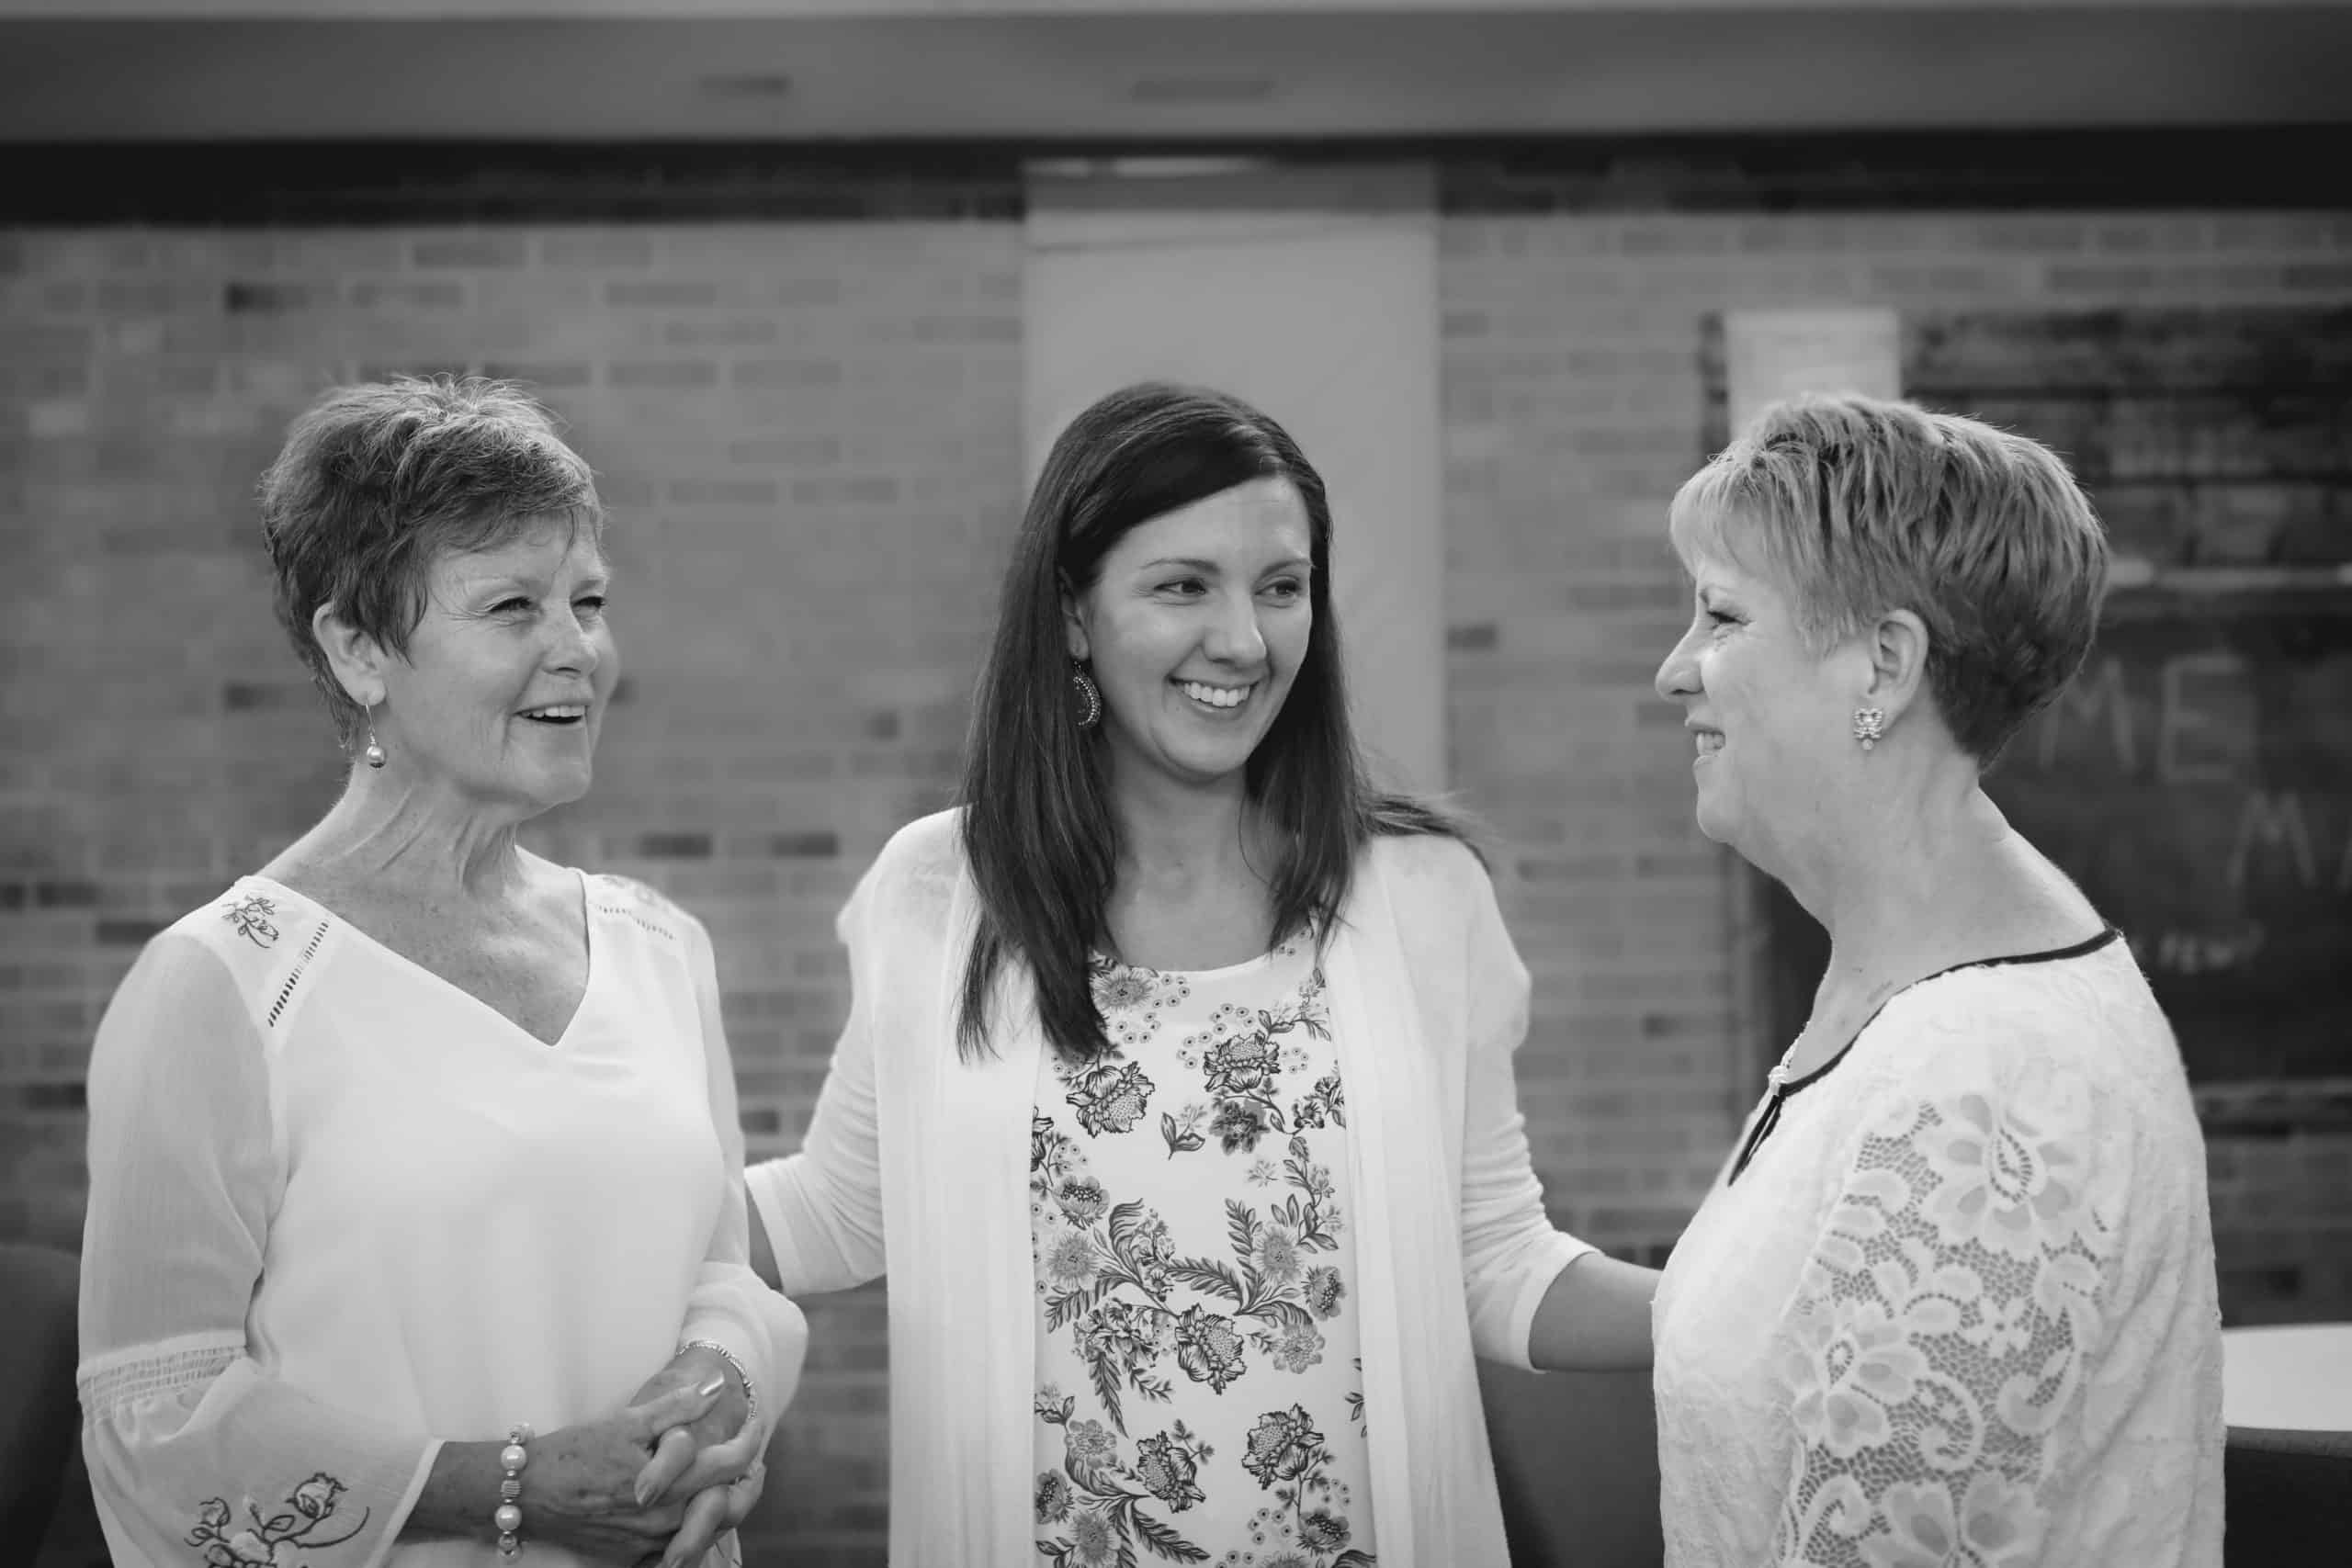 three women laughing together, one young and two older